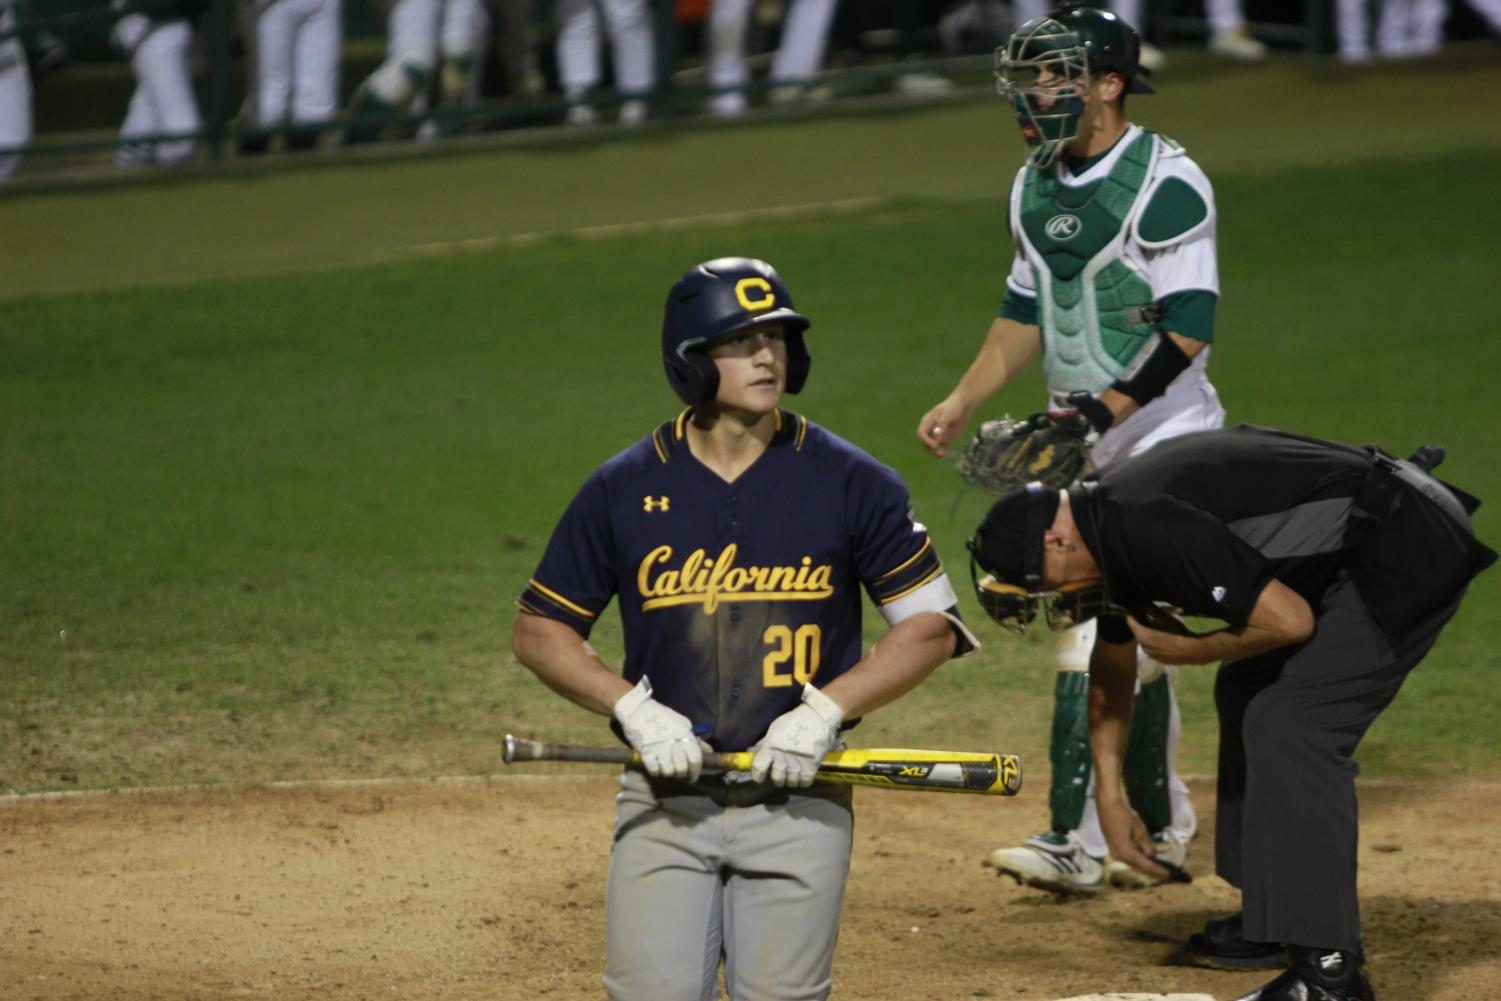 Cal+junior+infielder+Andrew+Vaughn+walks+away+from+home+plate+after+striking+out+in+a+6-0+loss+to+Sac+State+Tuesday+at+John+Smith+Field.+Vaughn%2C+a+highly+touted+MLB+prospect%2C+went+0-4+with+three+strikeouts.